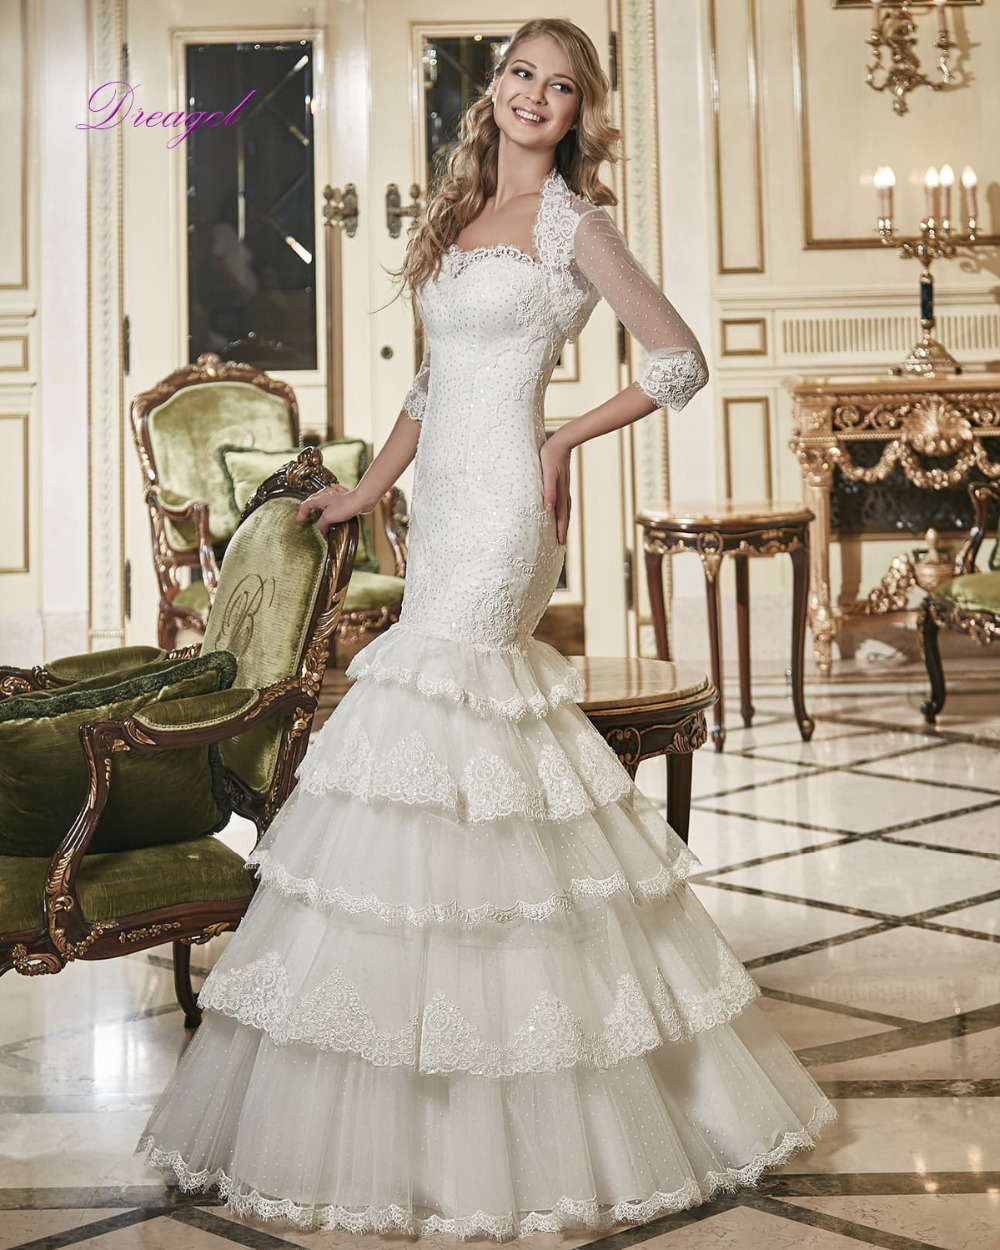 Elegant 2 Piece Wedding Dresses : Buy wholesale piece wedding dress from china